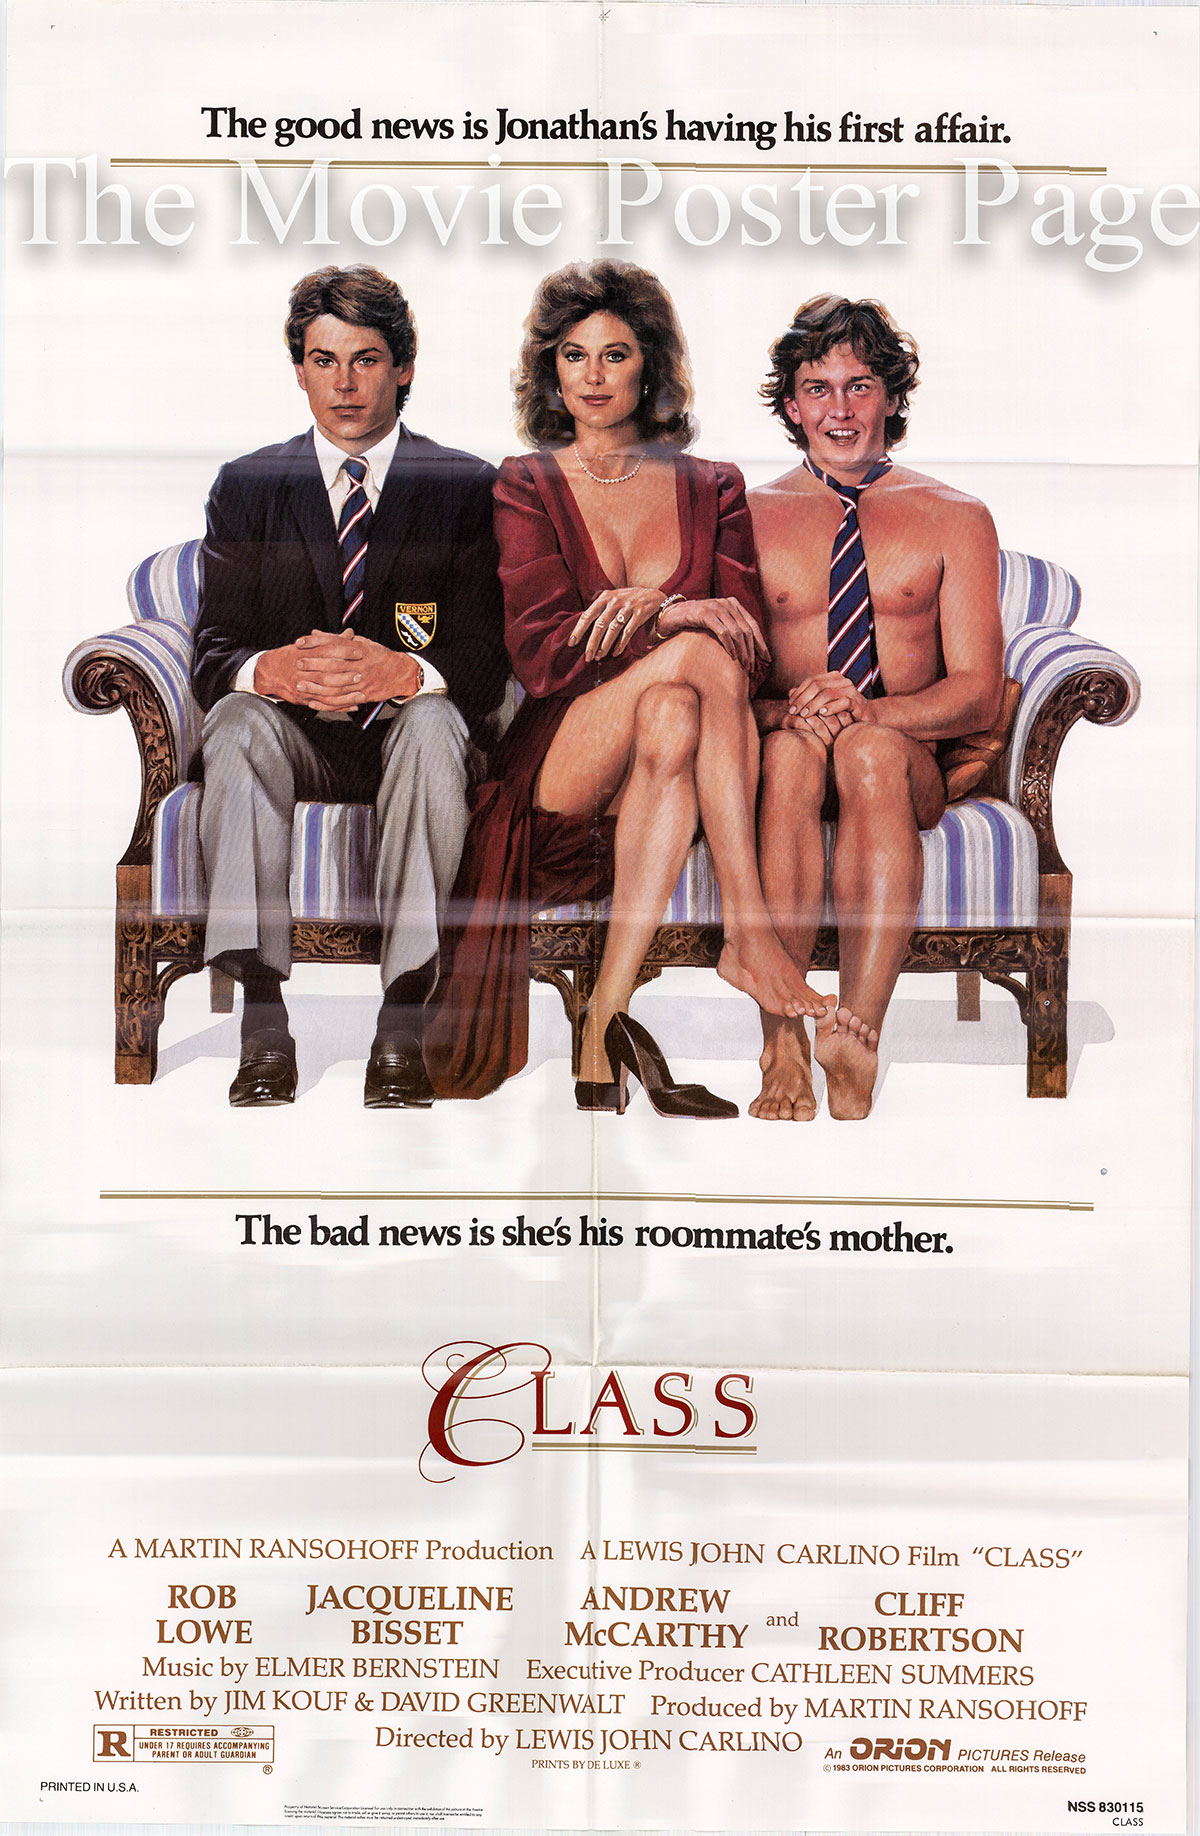 Pictured is a US one-sheet promotional poster for the 1983 Lewis John Carlino film Class starring Jacqueline Bisset.